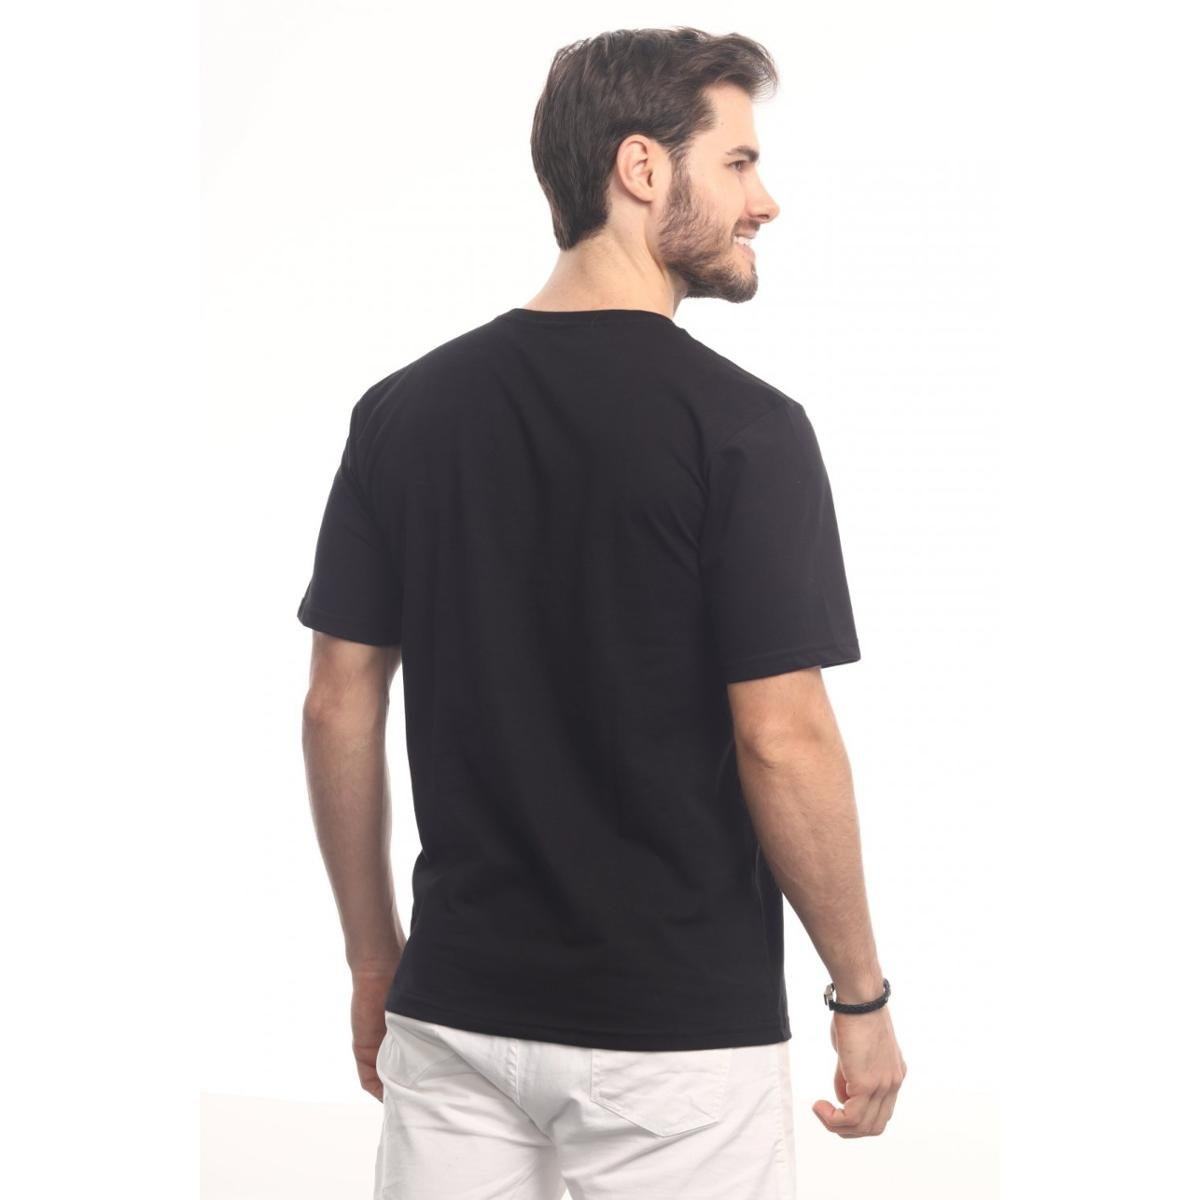 Camiseta Head Play New York City Masculina - Preto